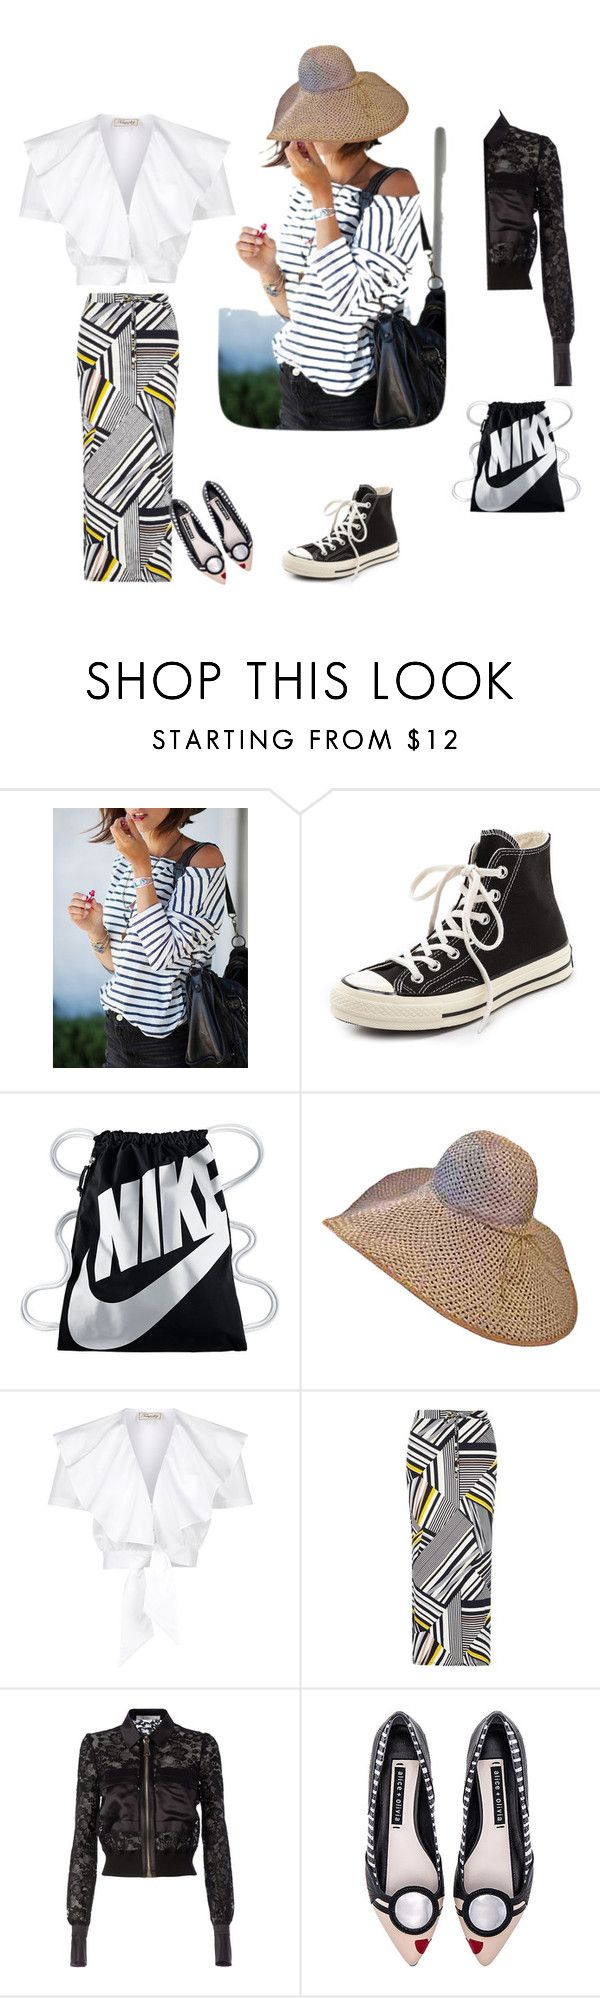 """""""siyah-beyaz,şık"""" by ayse-sedetmen ❤ liked on Polyvore featuring Converse, NIKE, Temperley London, Dorothy Perkins, Givenchy and Alice + Olivia"""